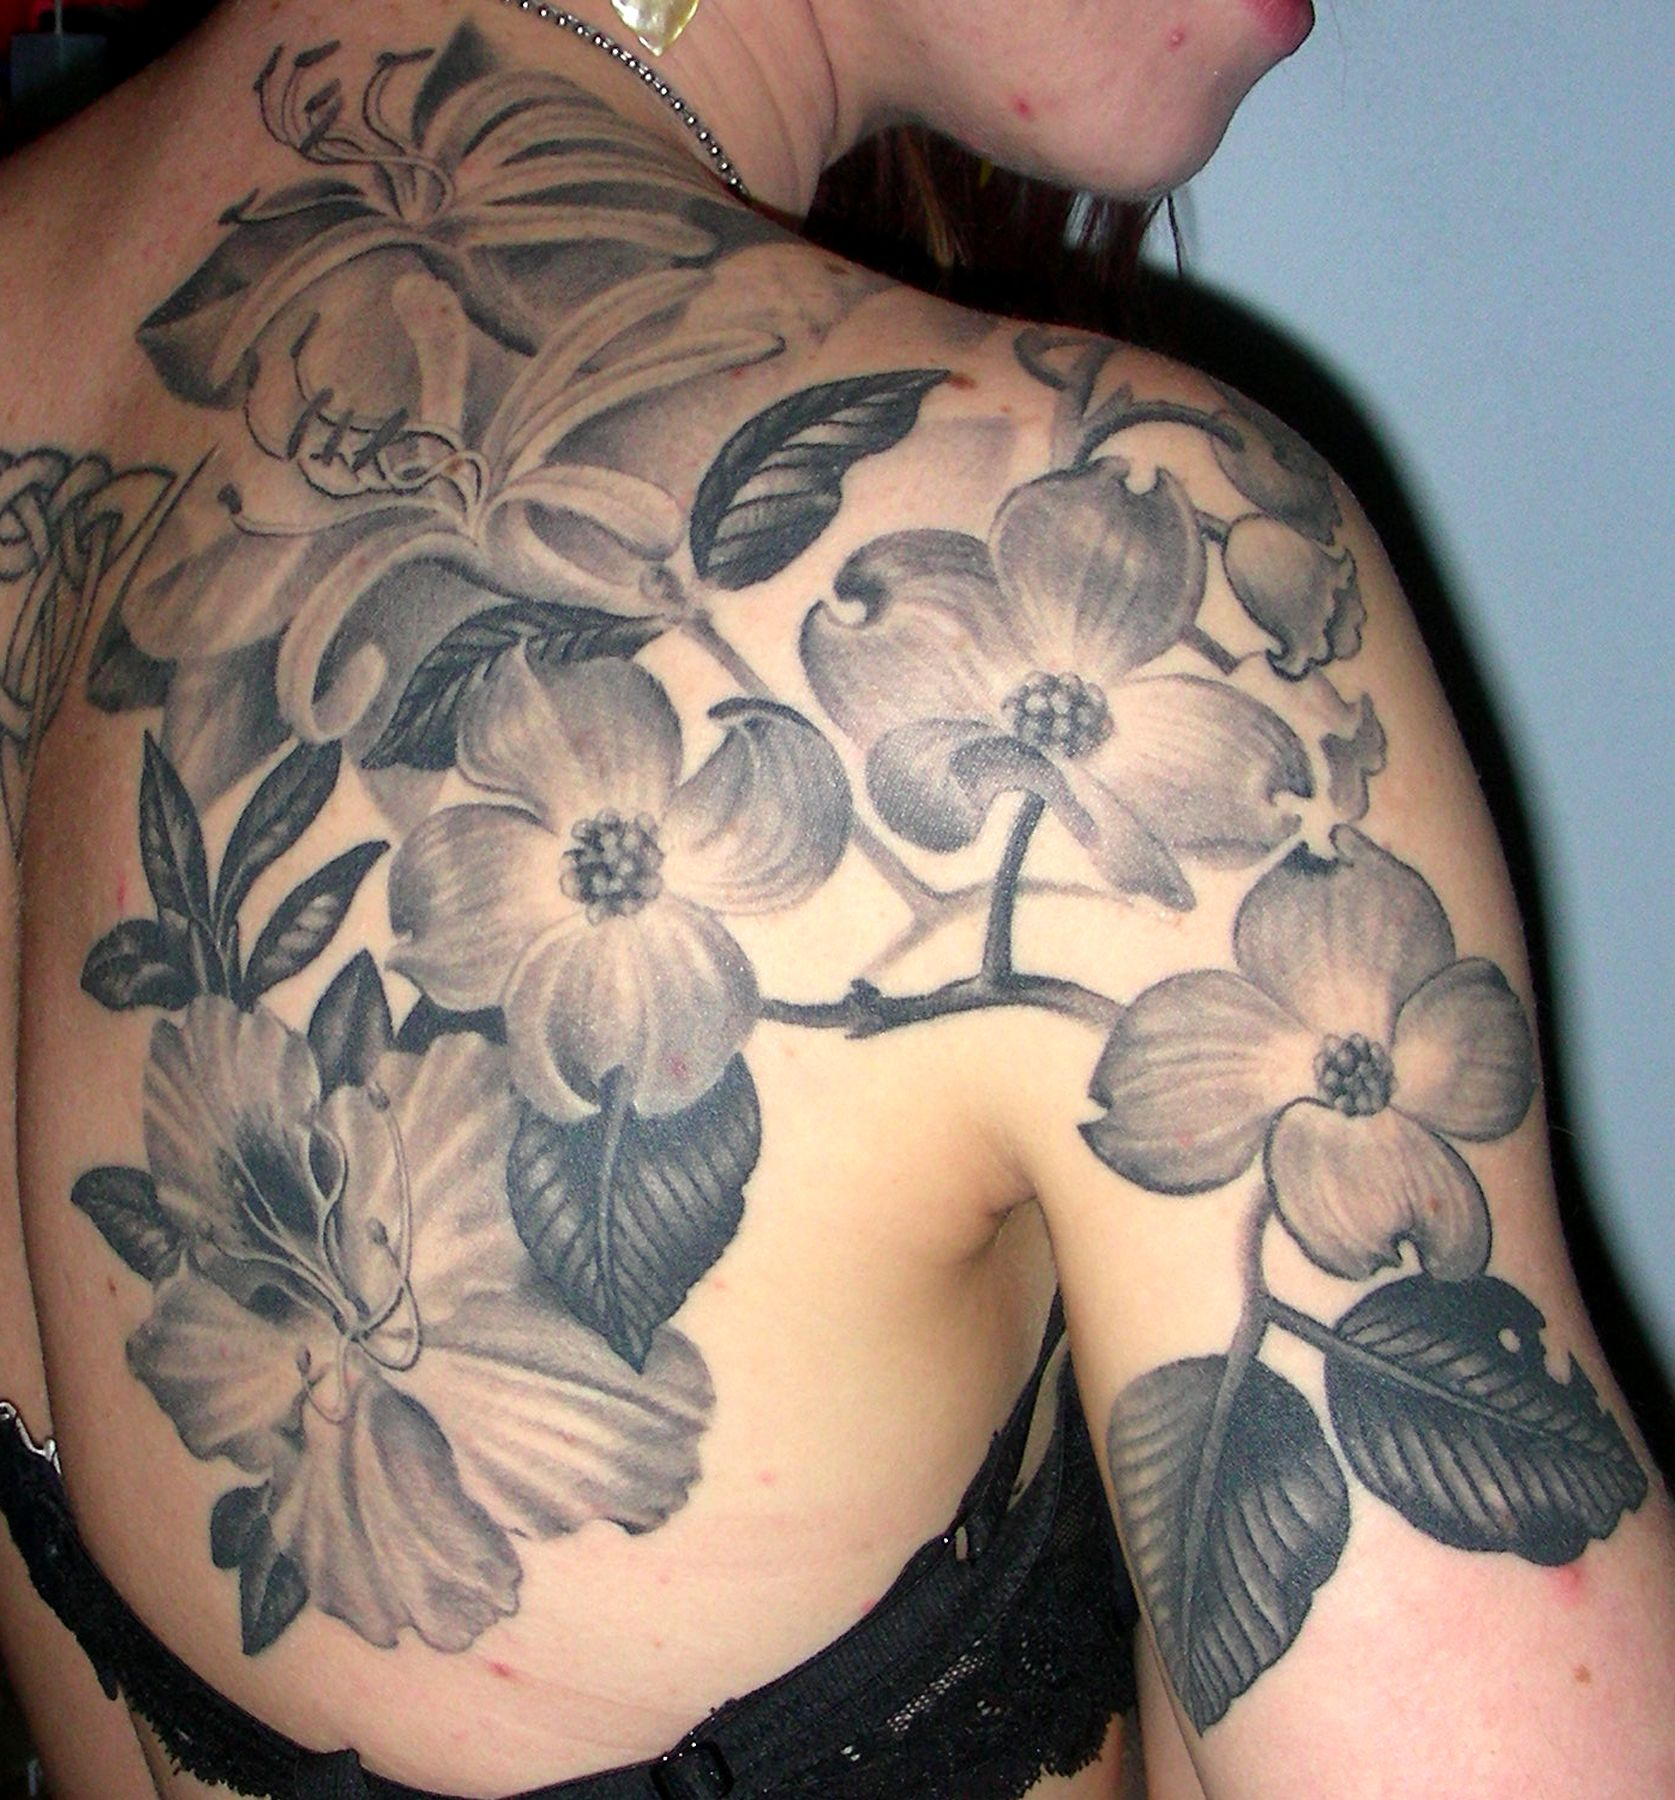 black and grey flower tattoos for women published february 17 2012 at 1675 1800 in black. Black Bedroom Furniture Sets. Home Design Ideas